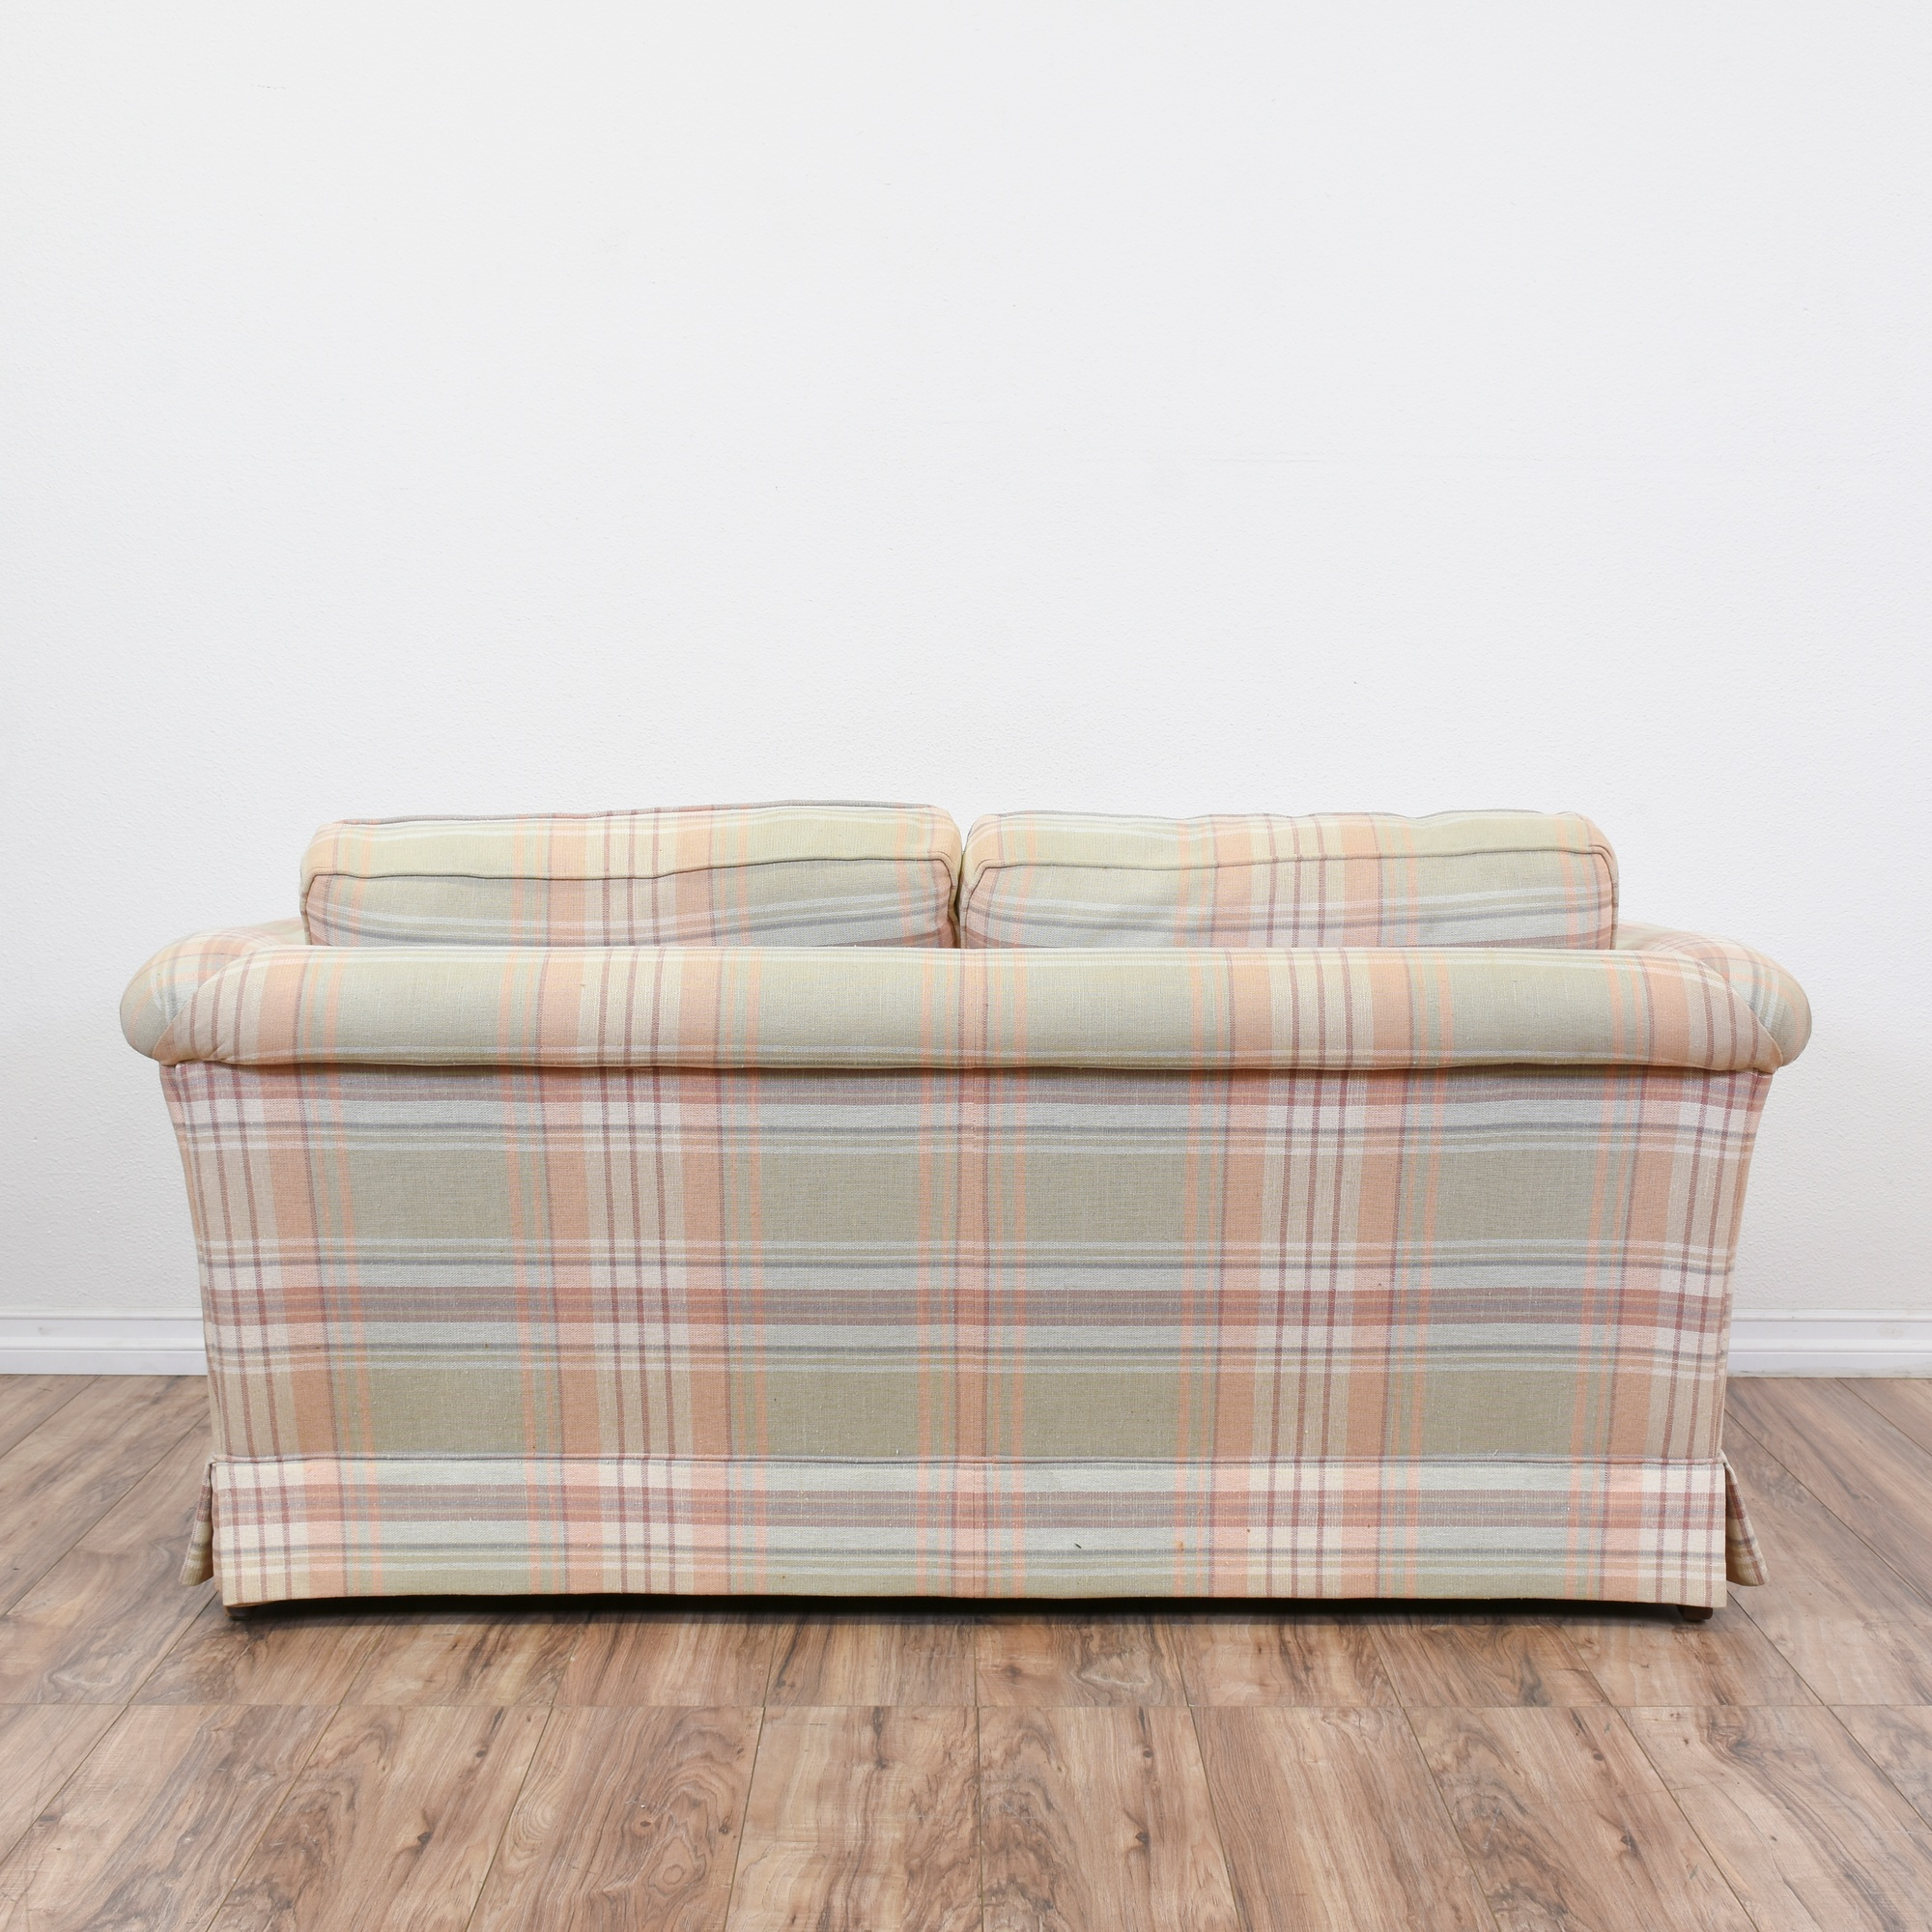 Ethan Allen Plaid Loveseat Sofa Loveseat Vintage Furniture San Diego Los Angeles